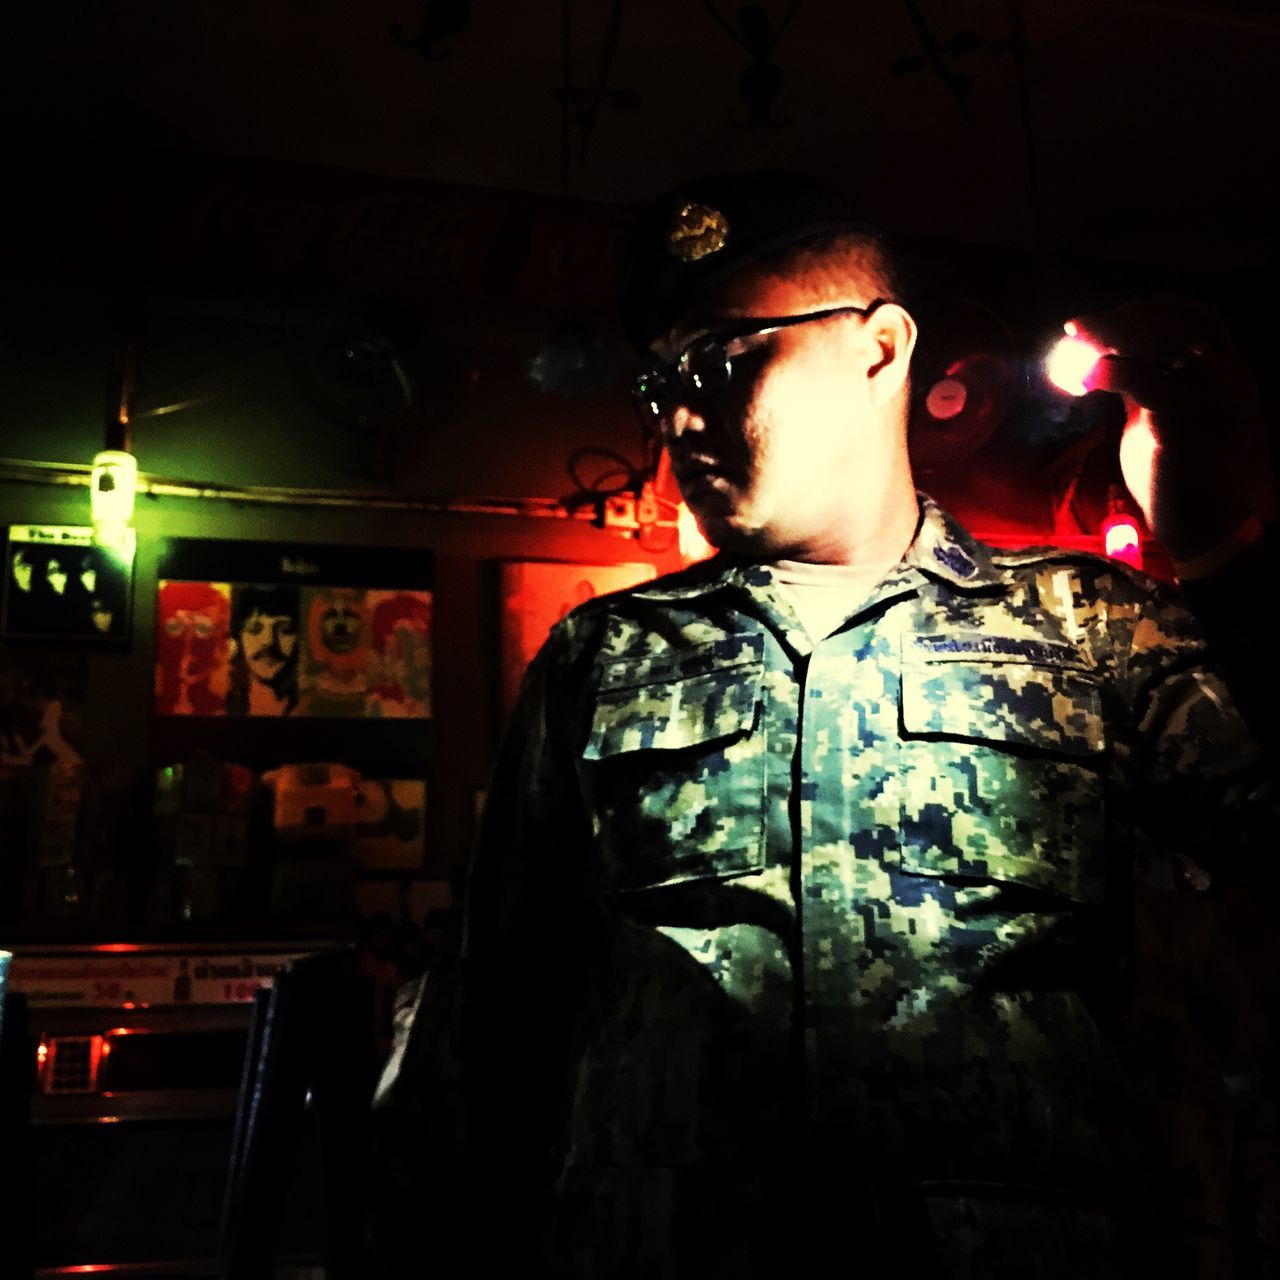 Thailand Army Night Raid Bar Torchlight Dark One Person Real People Inspection